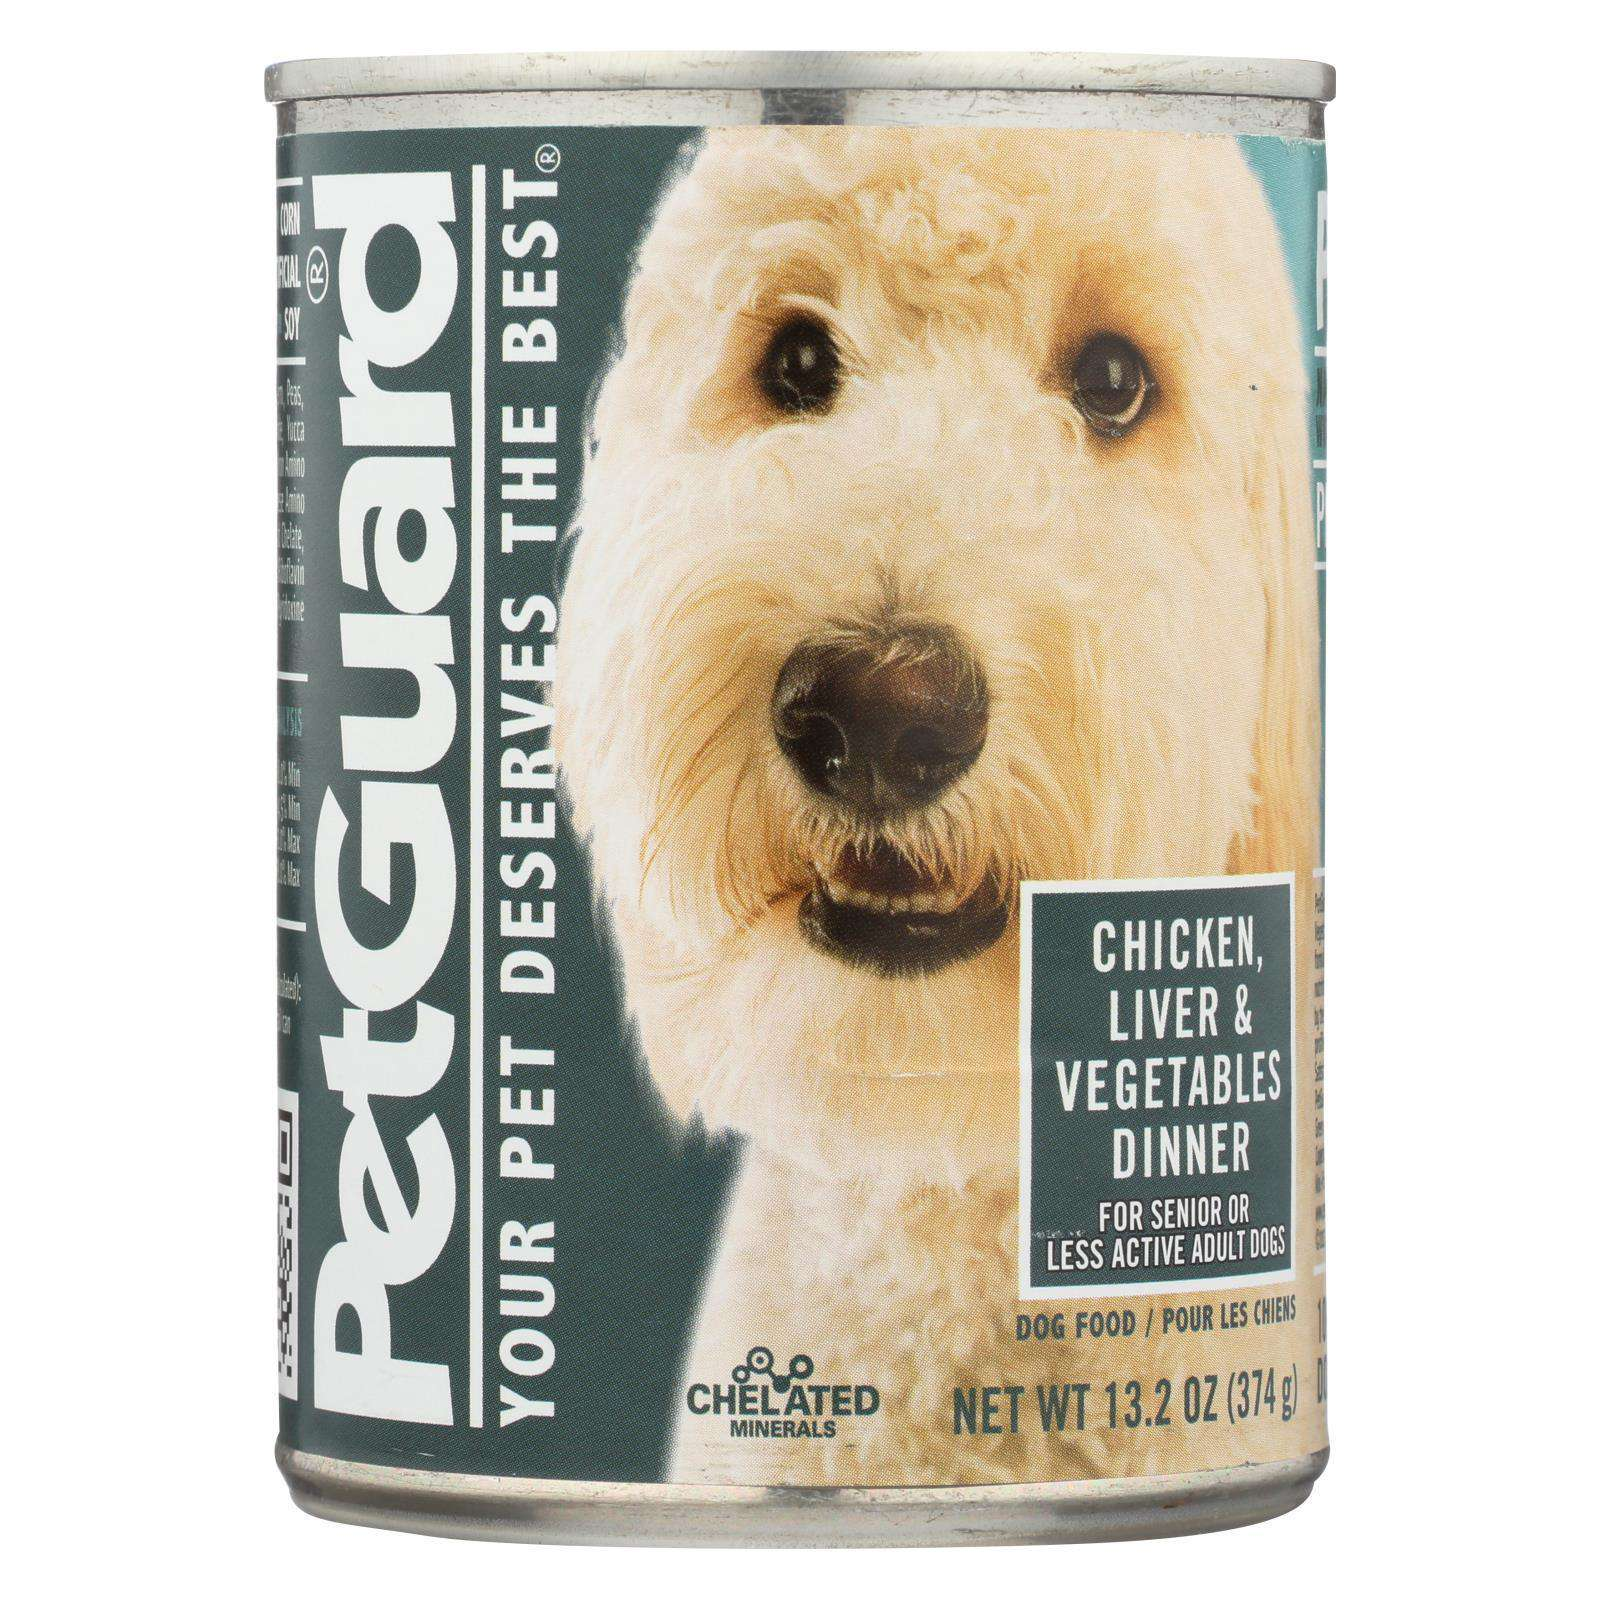 Petguard Canned Dog Foods - Liver, Vegetable And Wheat Germ Dinner - Case Of 12 - 13.2 Oz.-Petguard-DirtyFurClothing